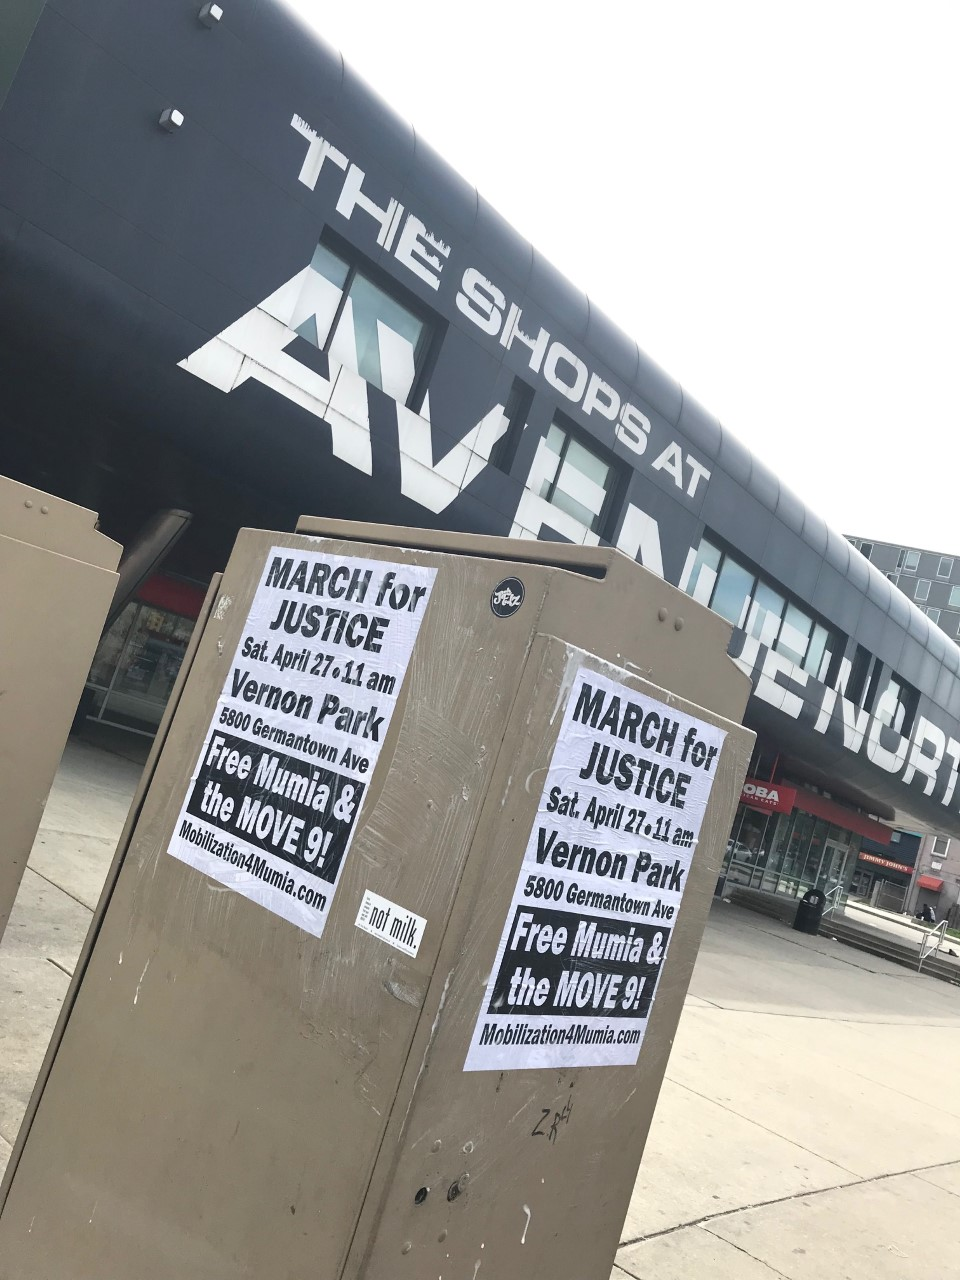 Posters at N. Broad and Cecil B Moore advertising April 27 March for Justice for Mumia